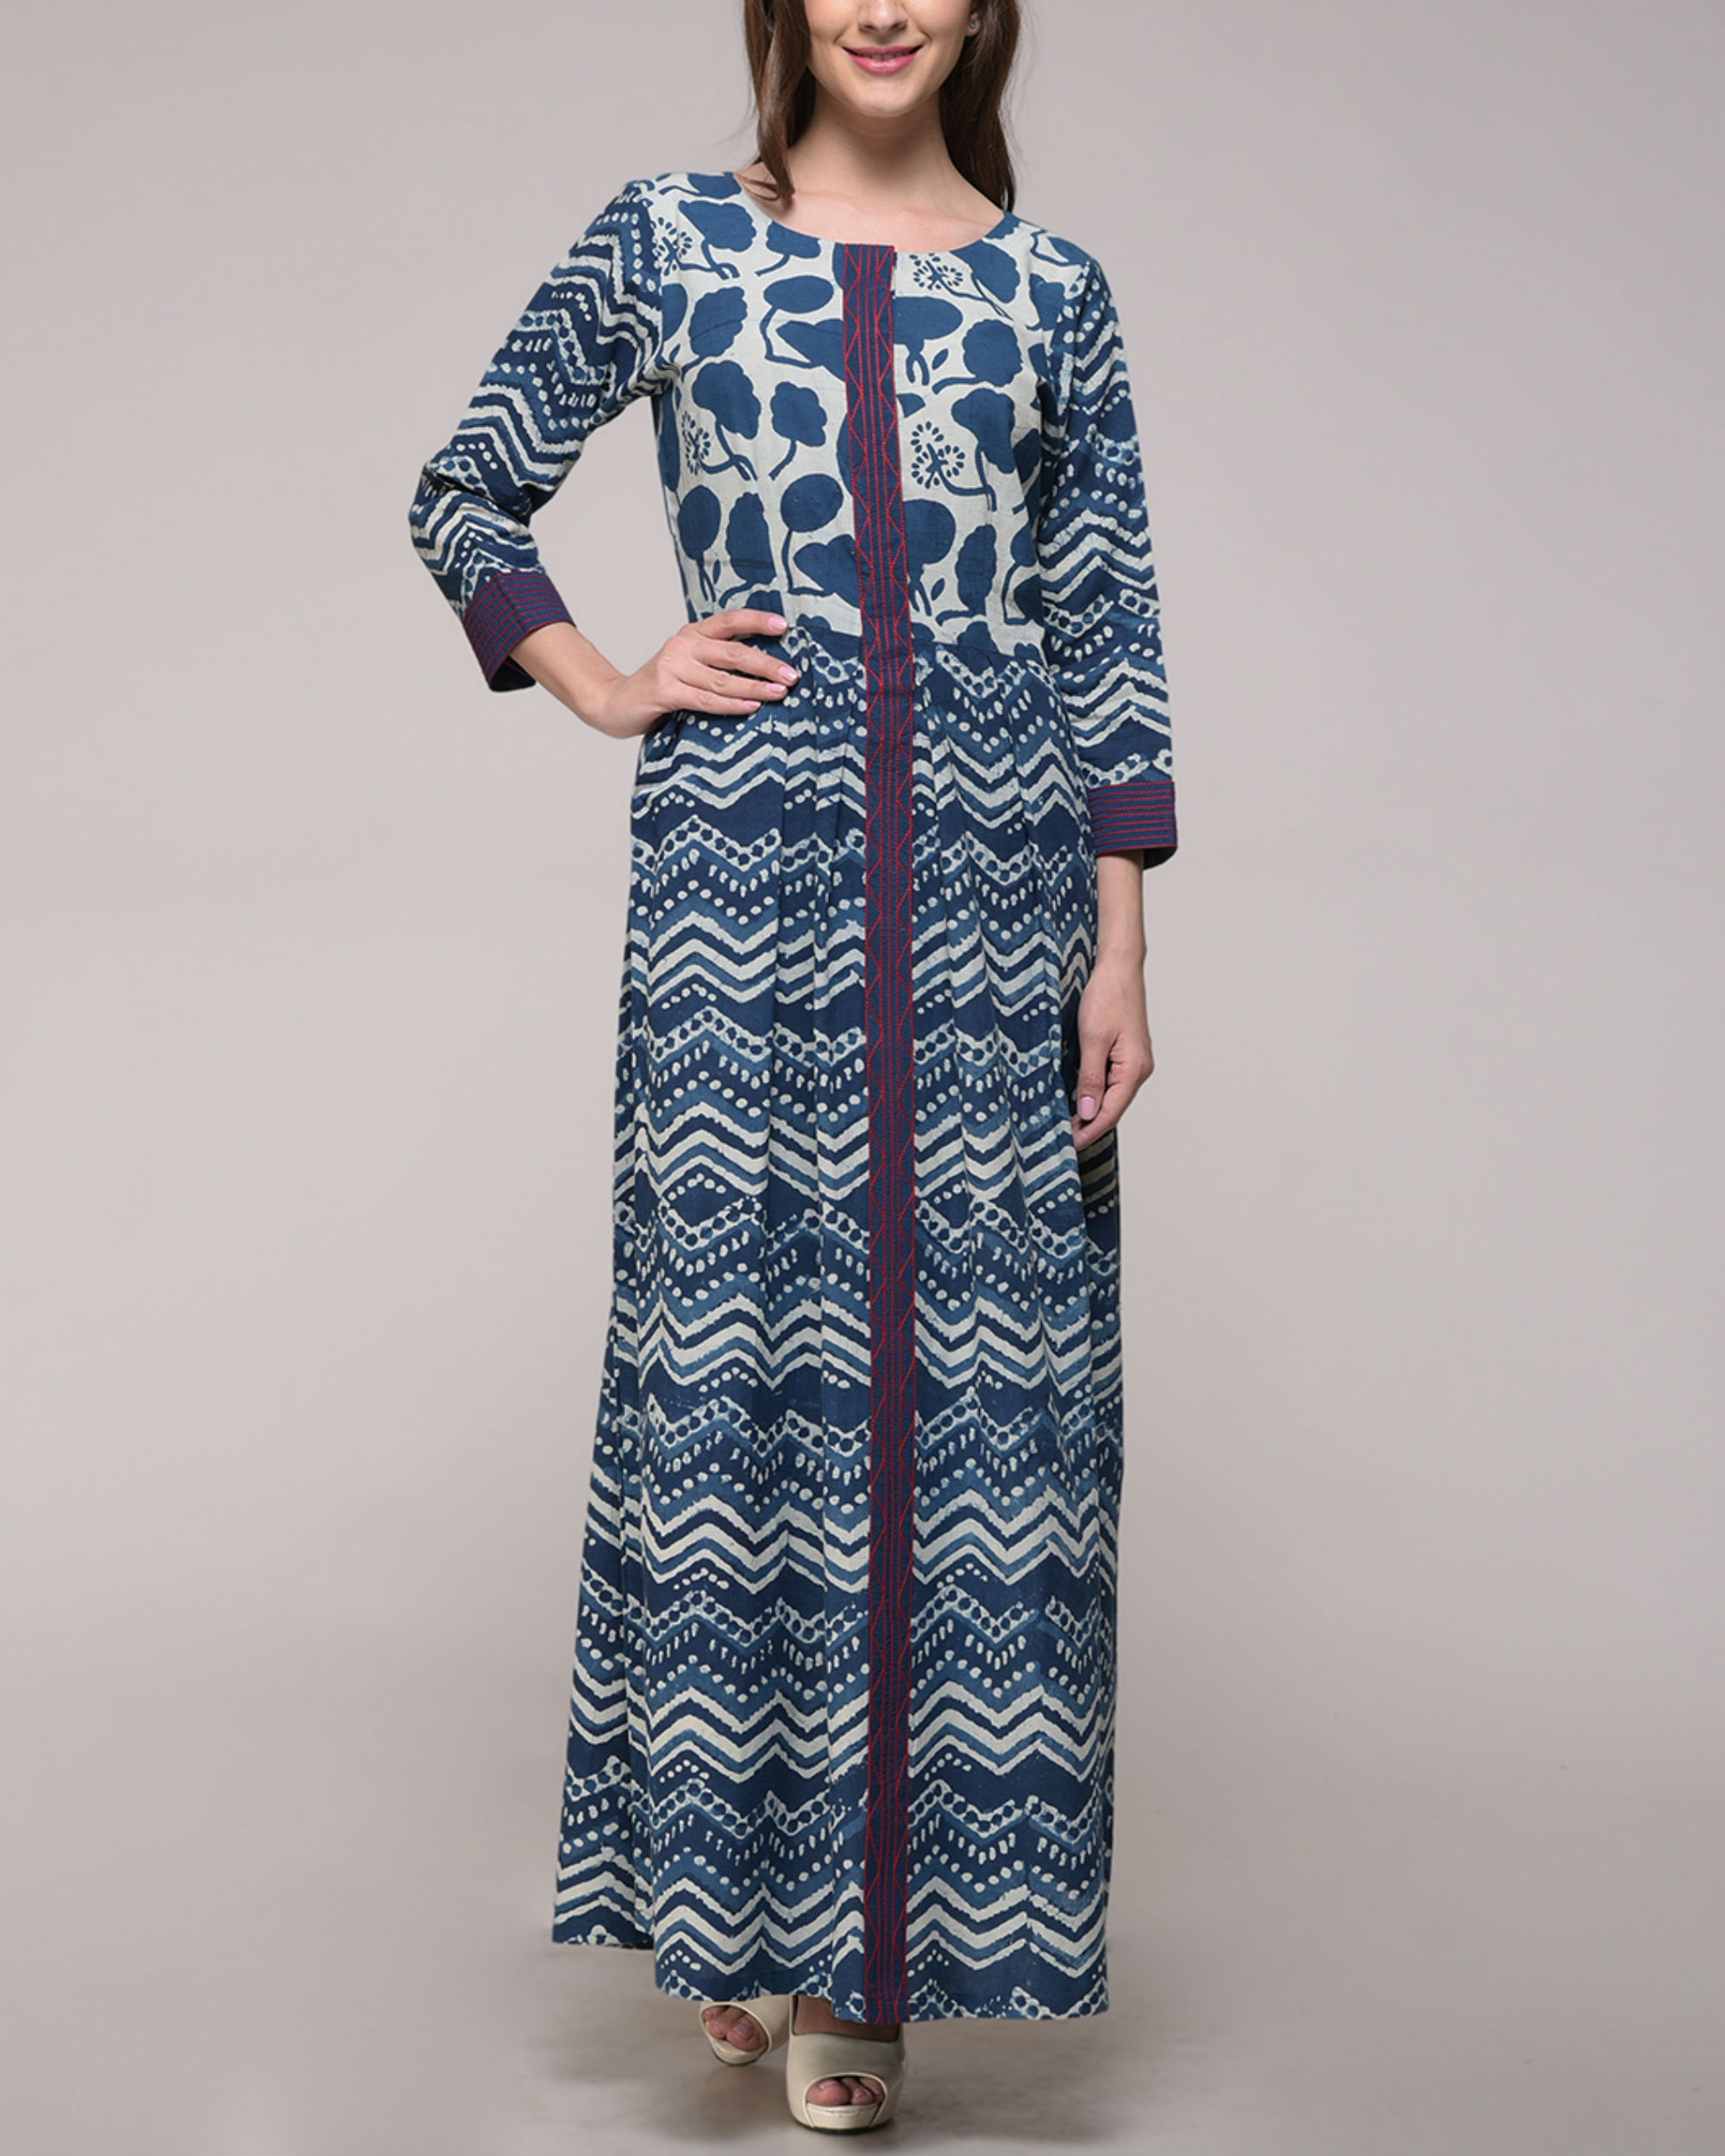 Indigo print embroidered dress